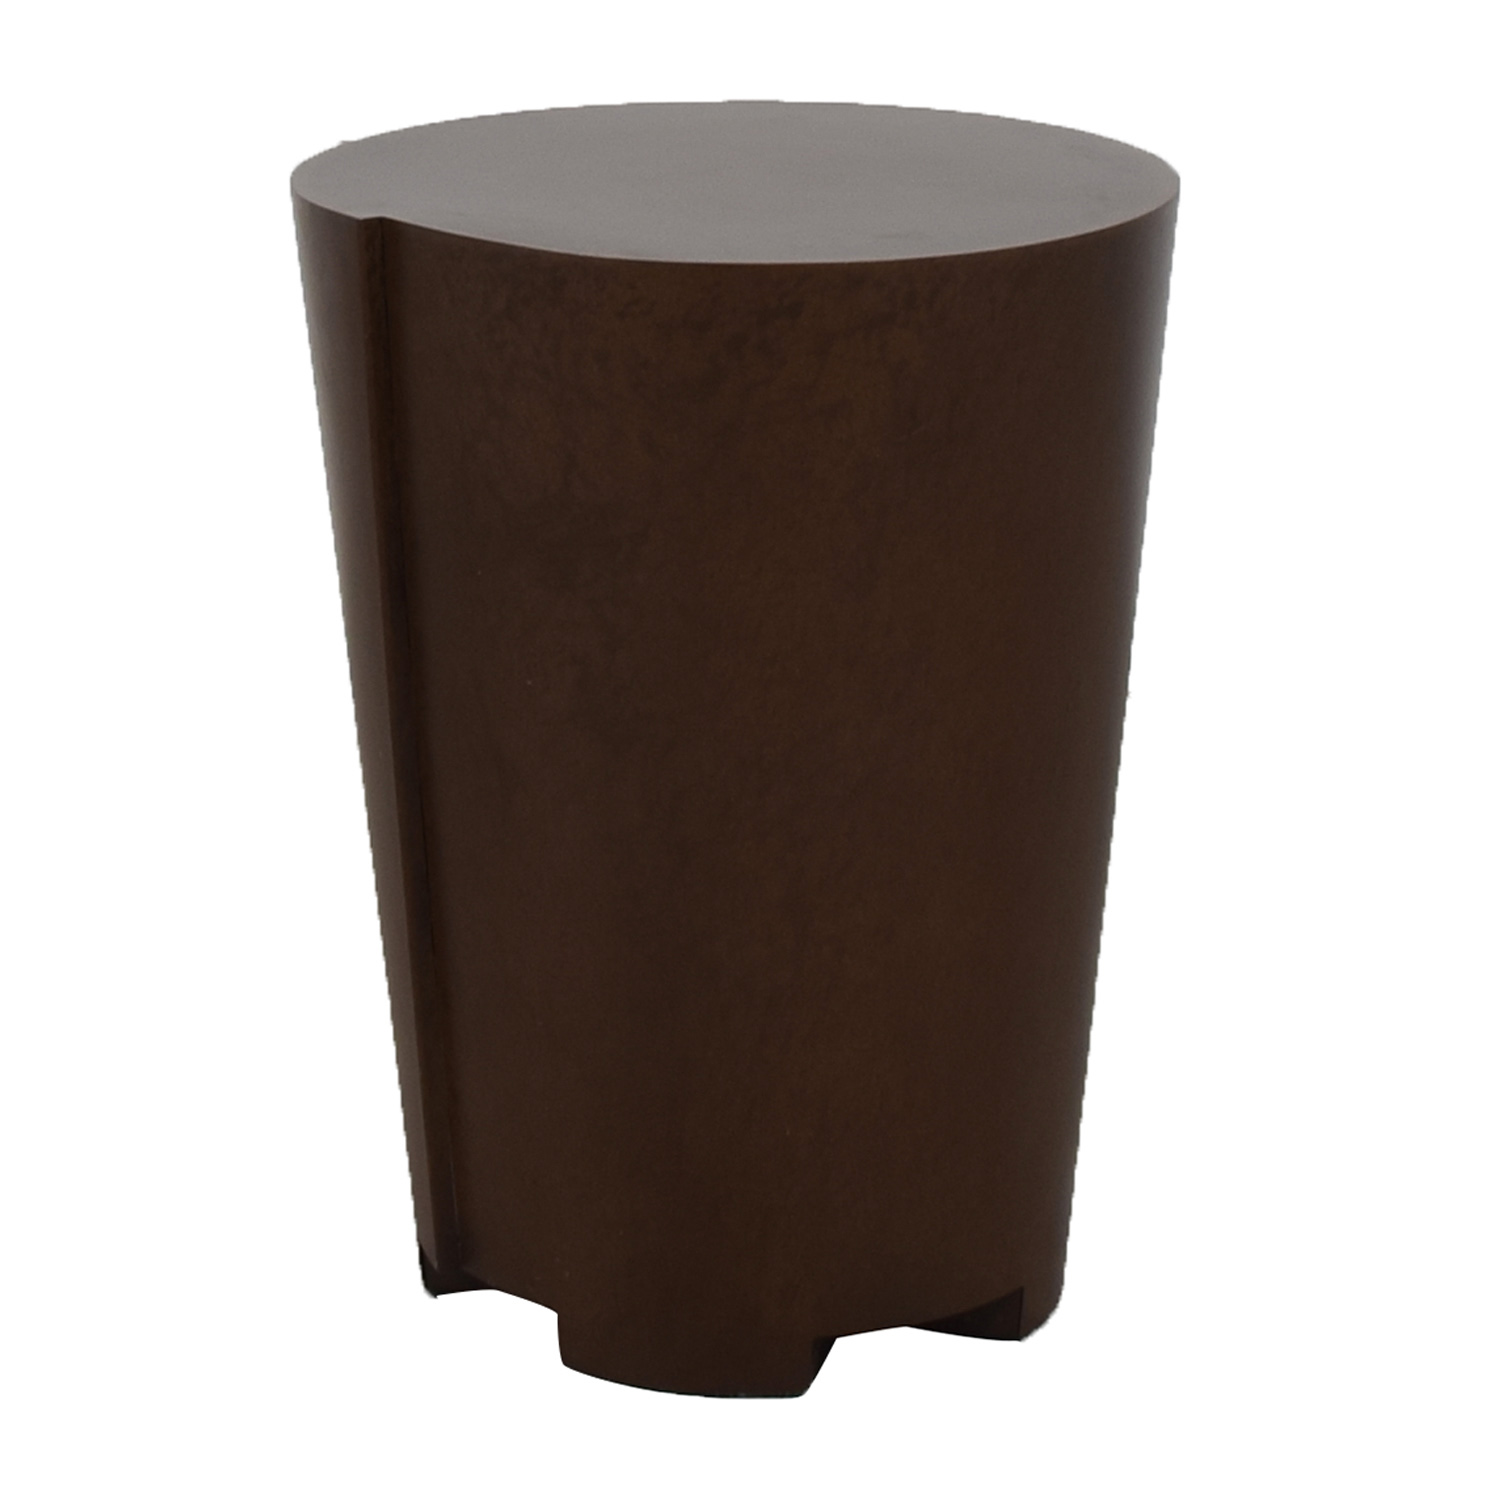 buy Crate & Barrel Bronze Drum Table Crate & Barrel Tables